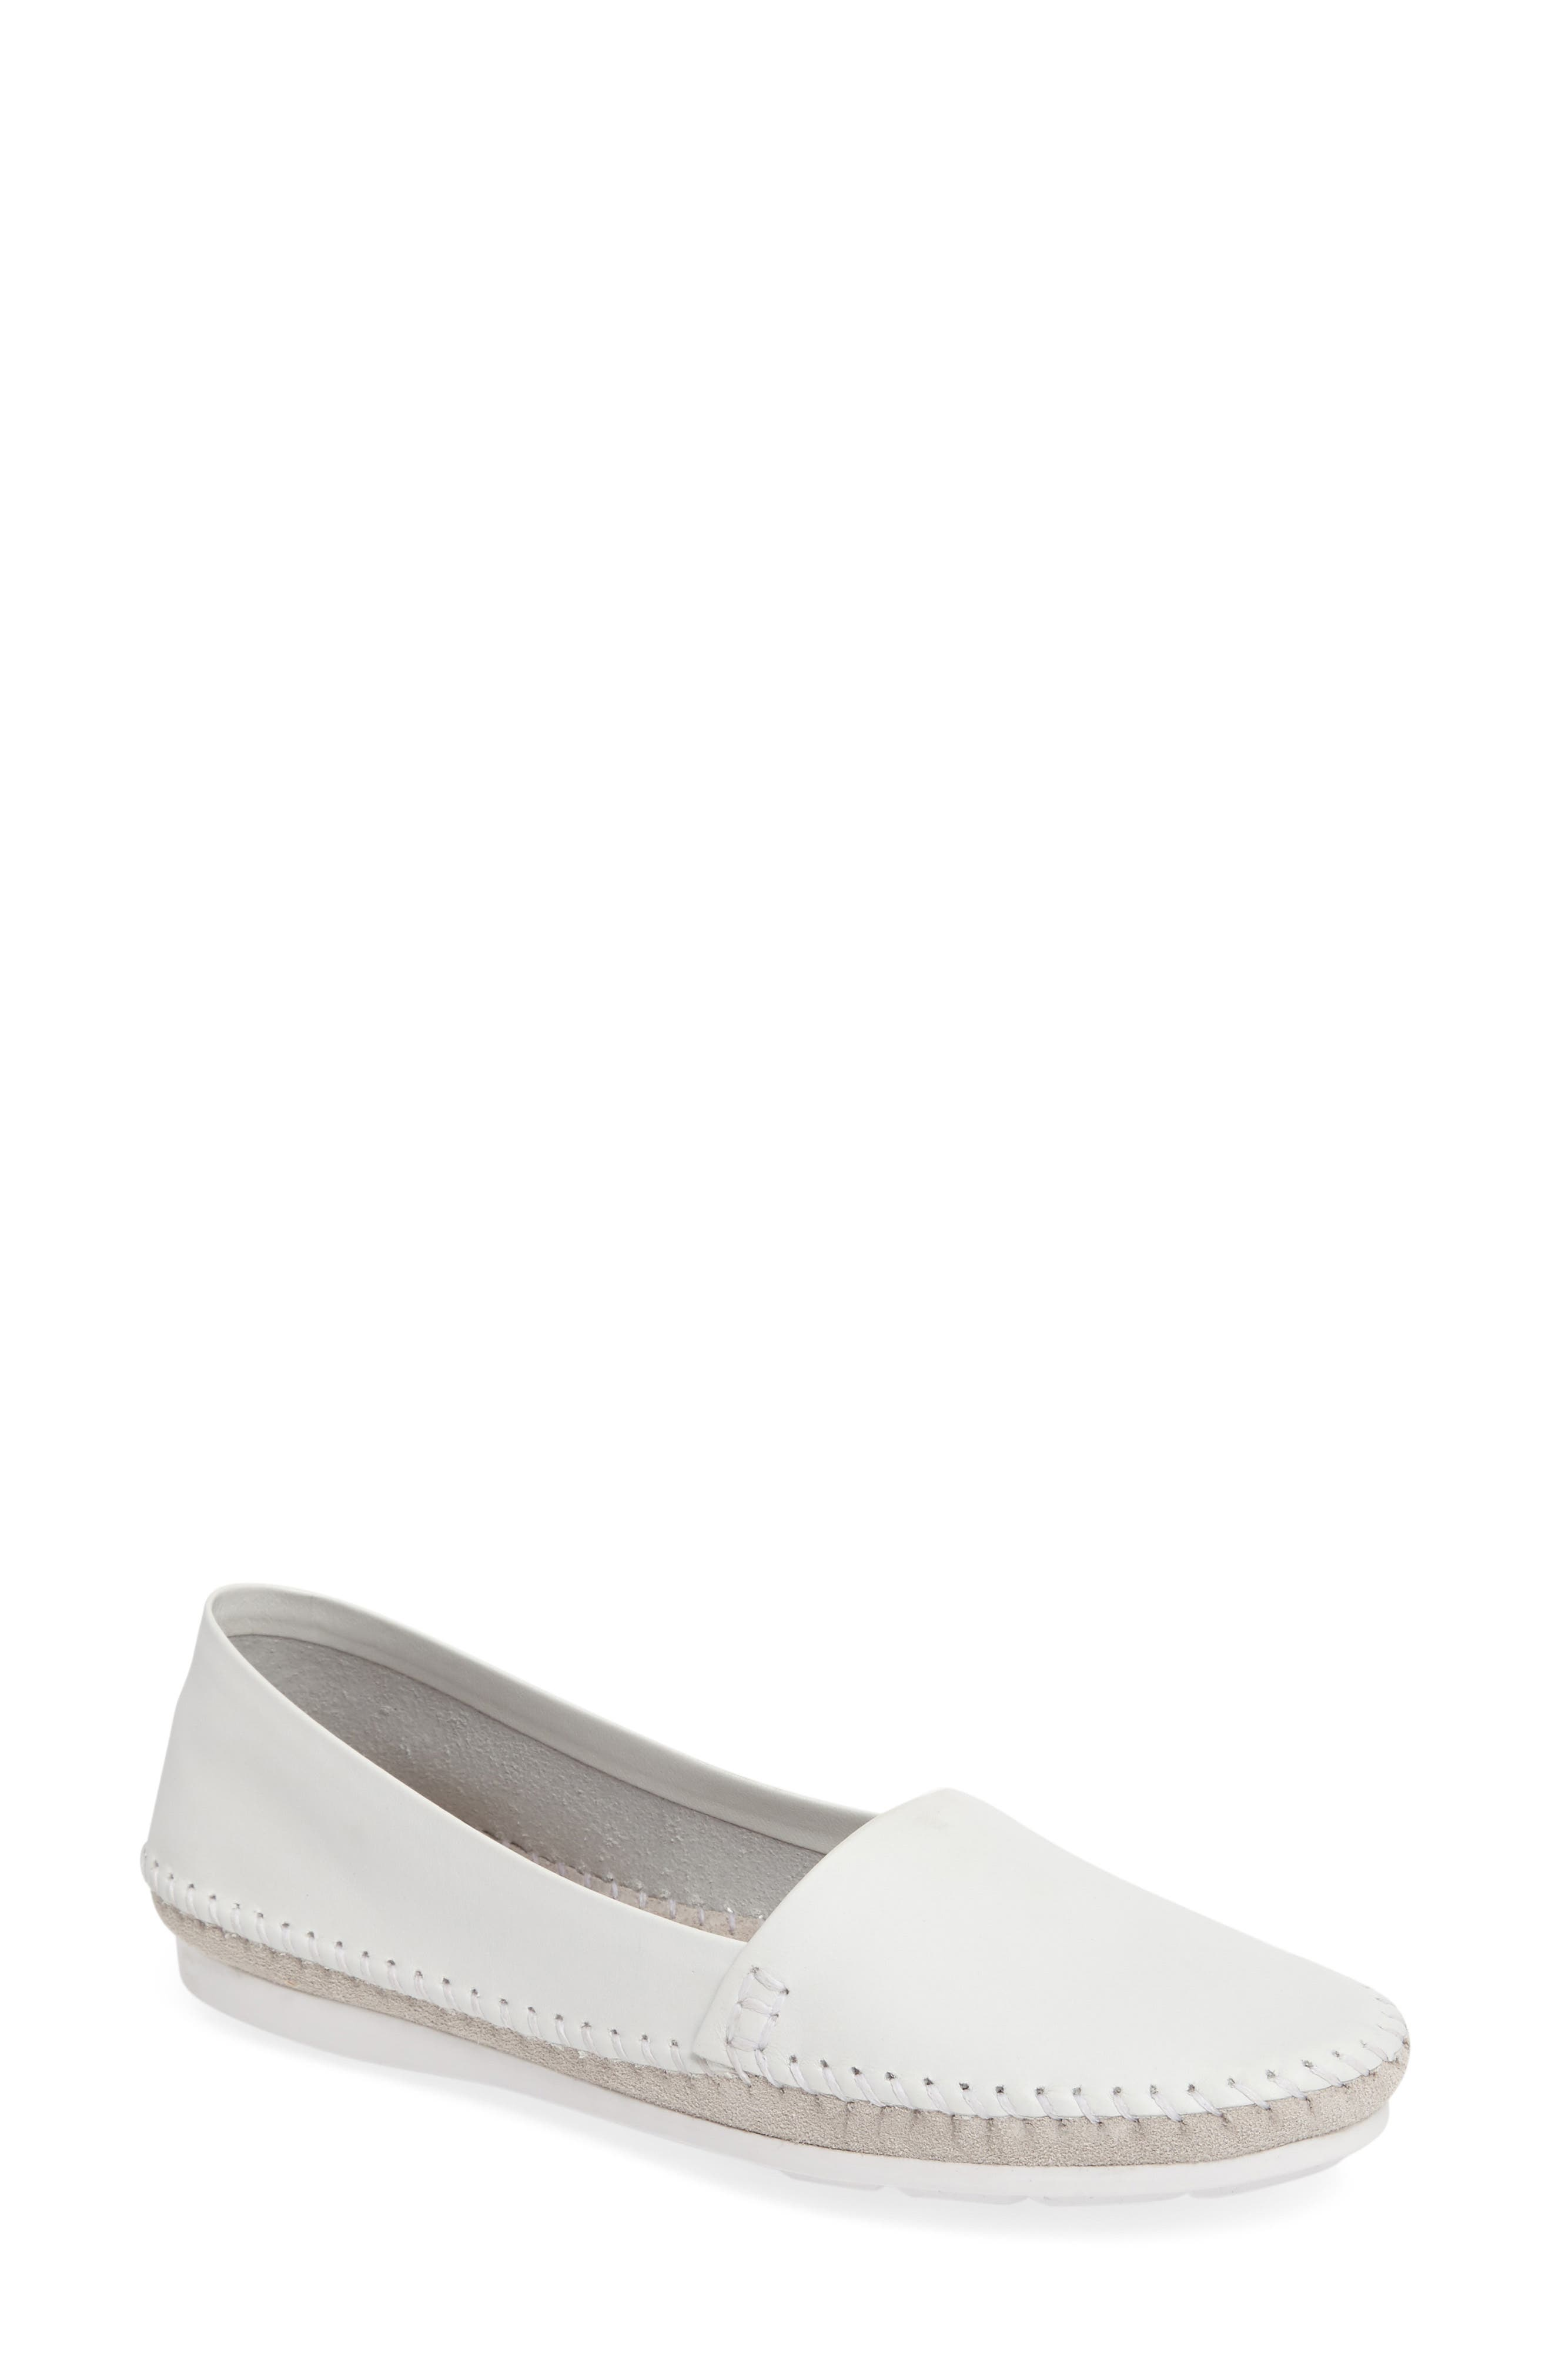 Star Flat,                             Main thumbnail 1, color,                             Cloud Leather/ Suede